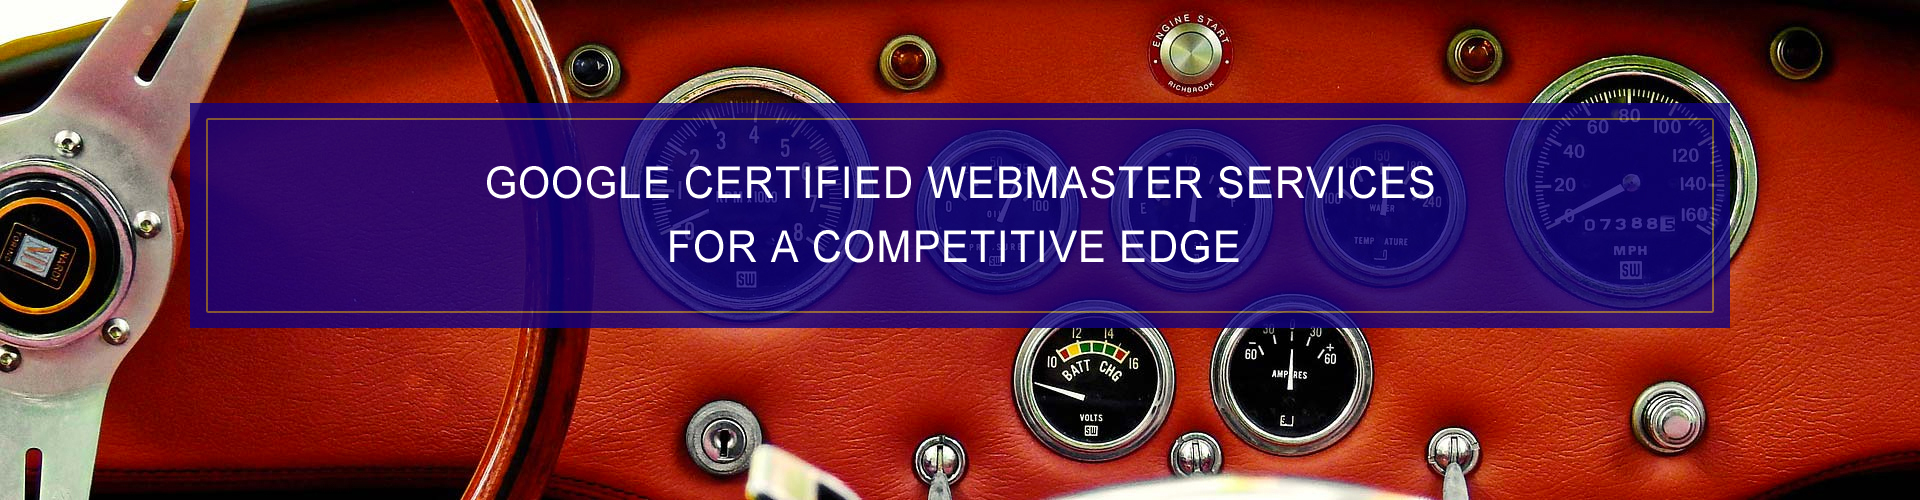 Dashboard Interactive - Google Certified Webmaster Services Competitive Edge